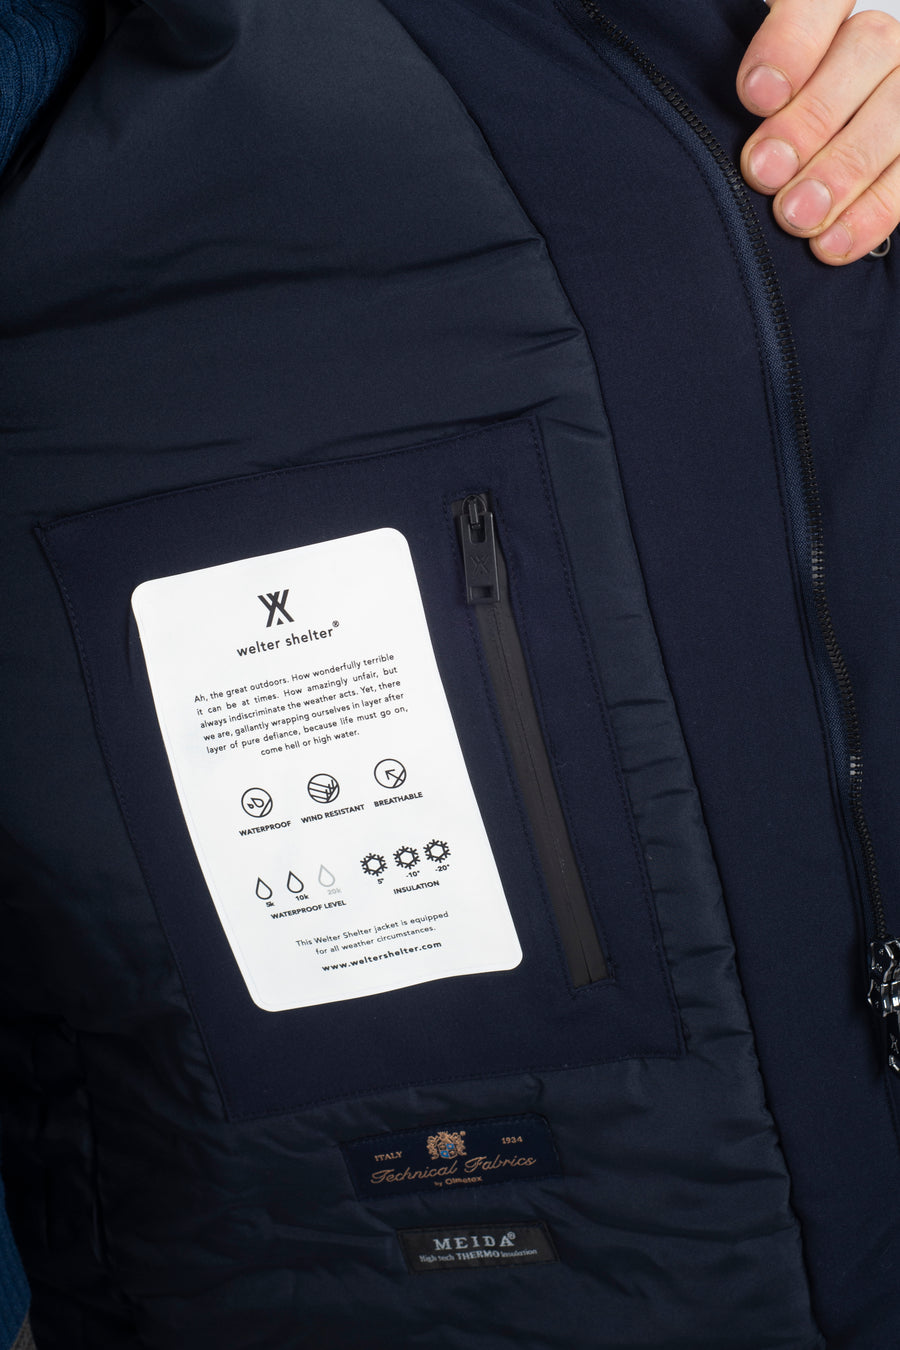 Marinero Parka Berlingo Navy - Welter Shelter - Waterproof, Windproof, breathable Packable